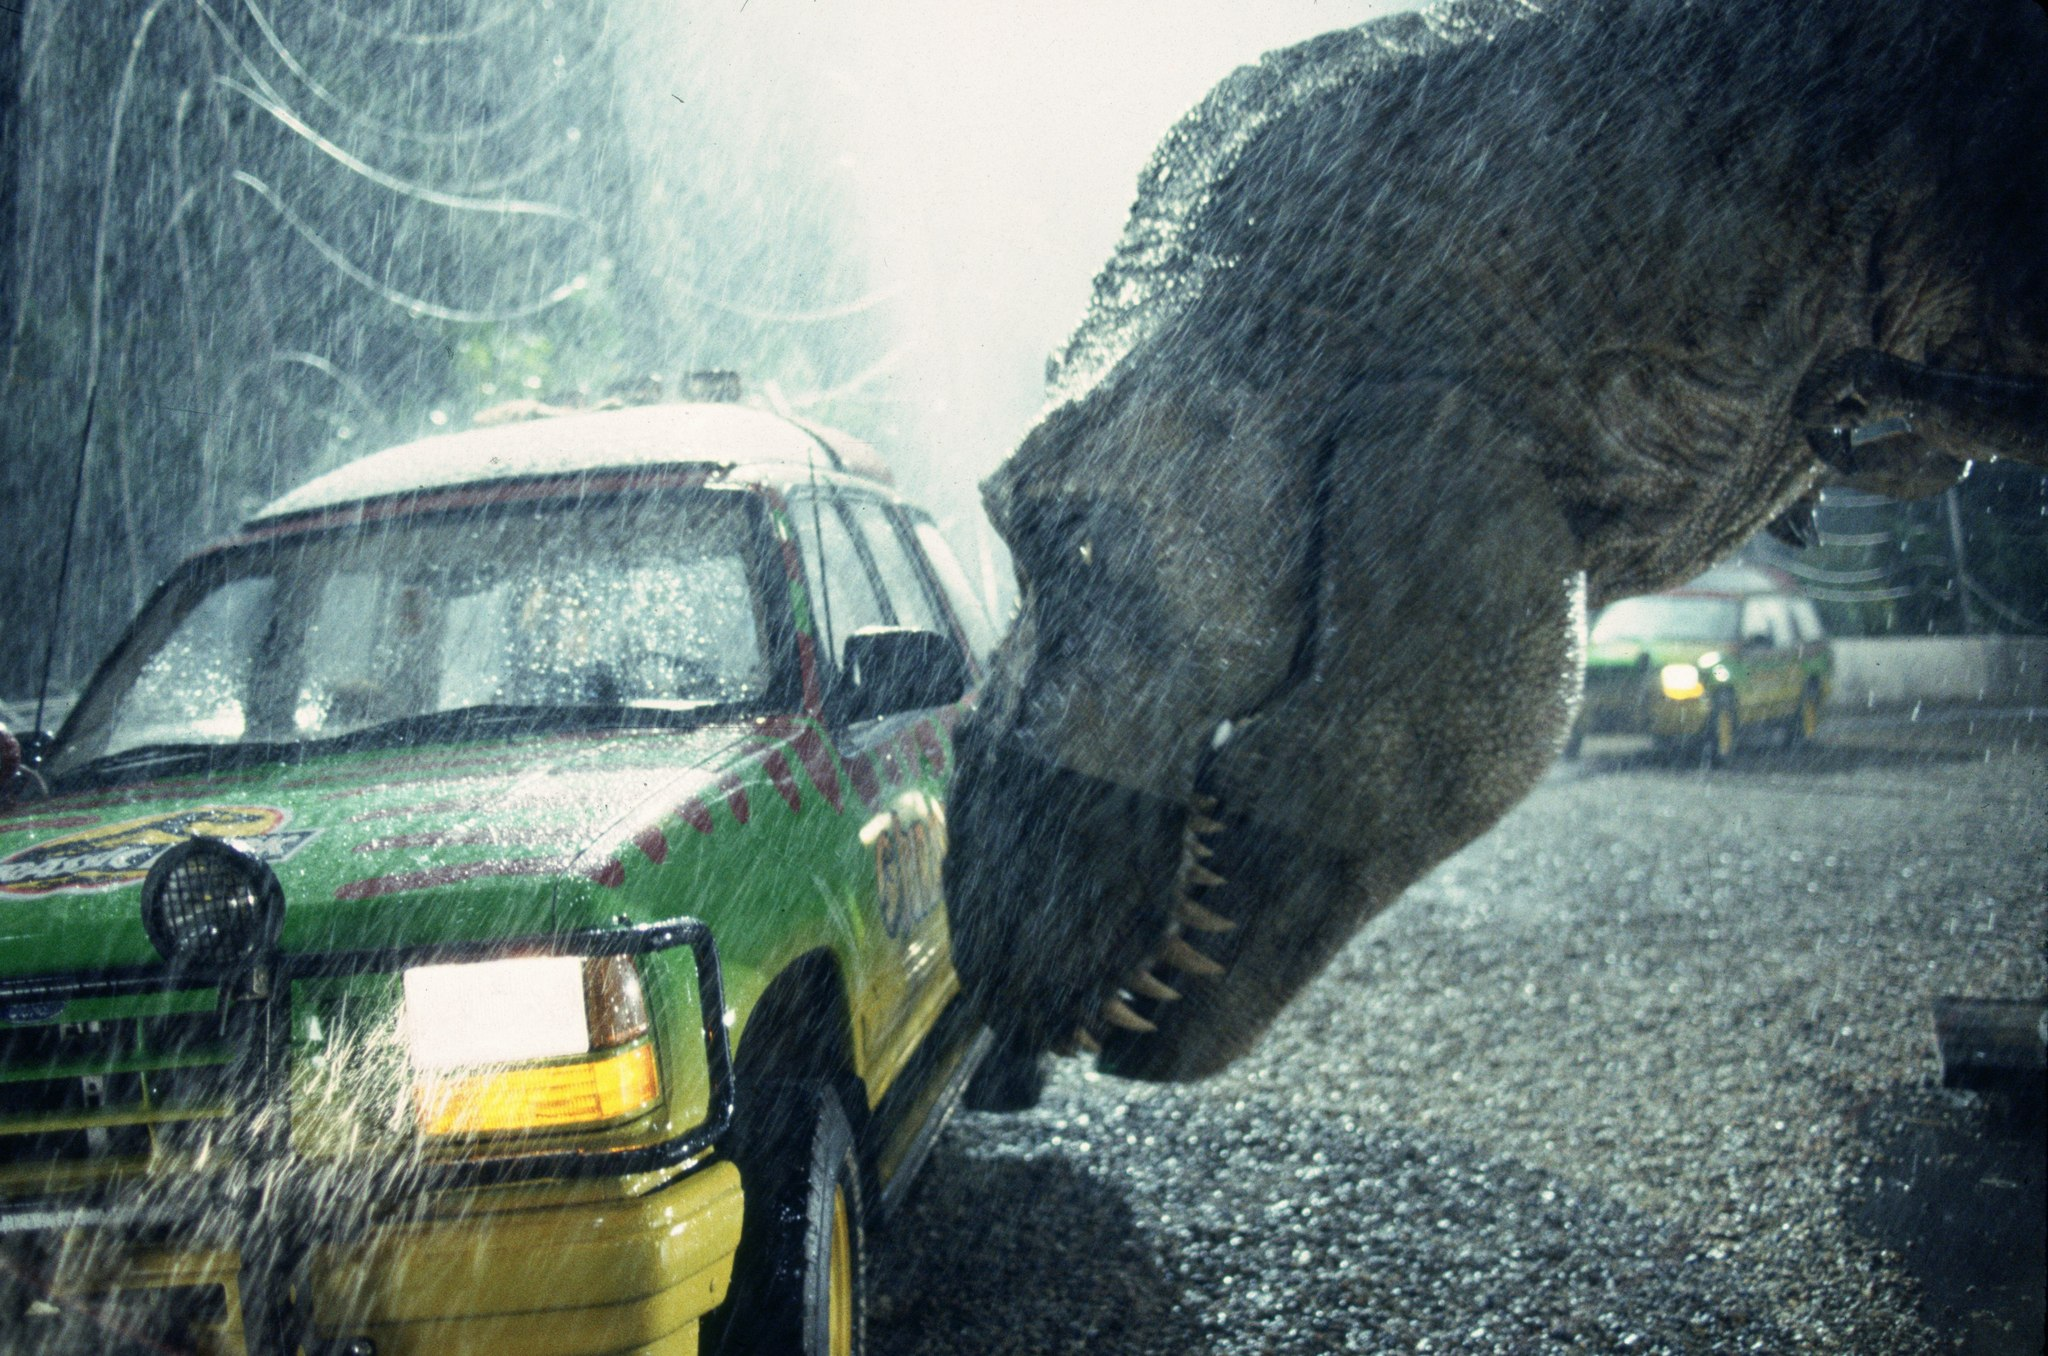 Jurassic Park 4' release date announced, to be shot in 3D - Movies ...